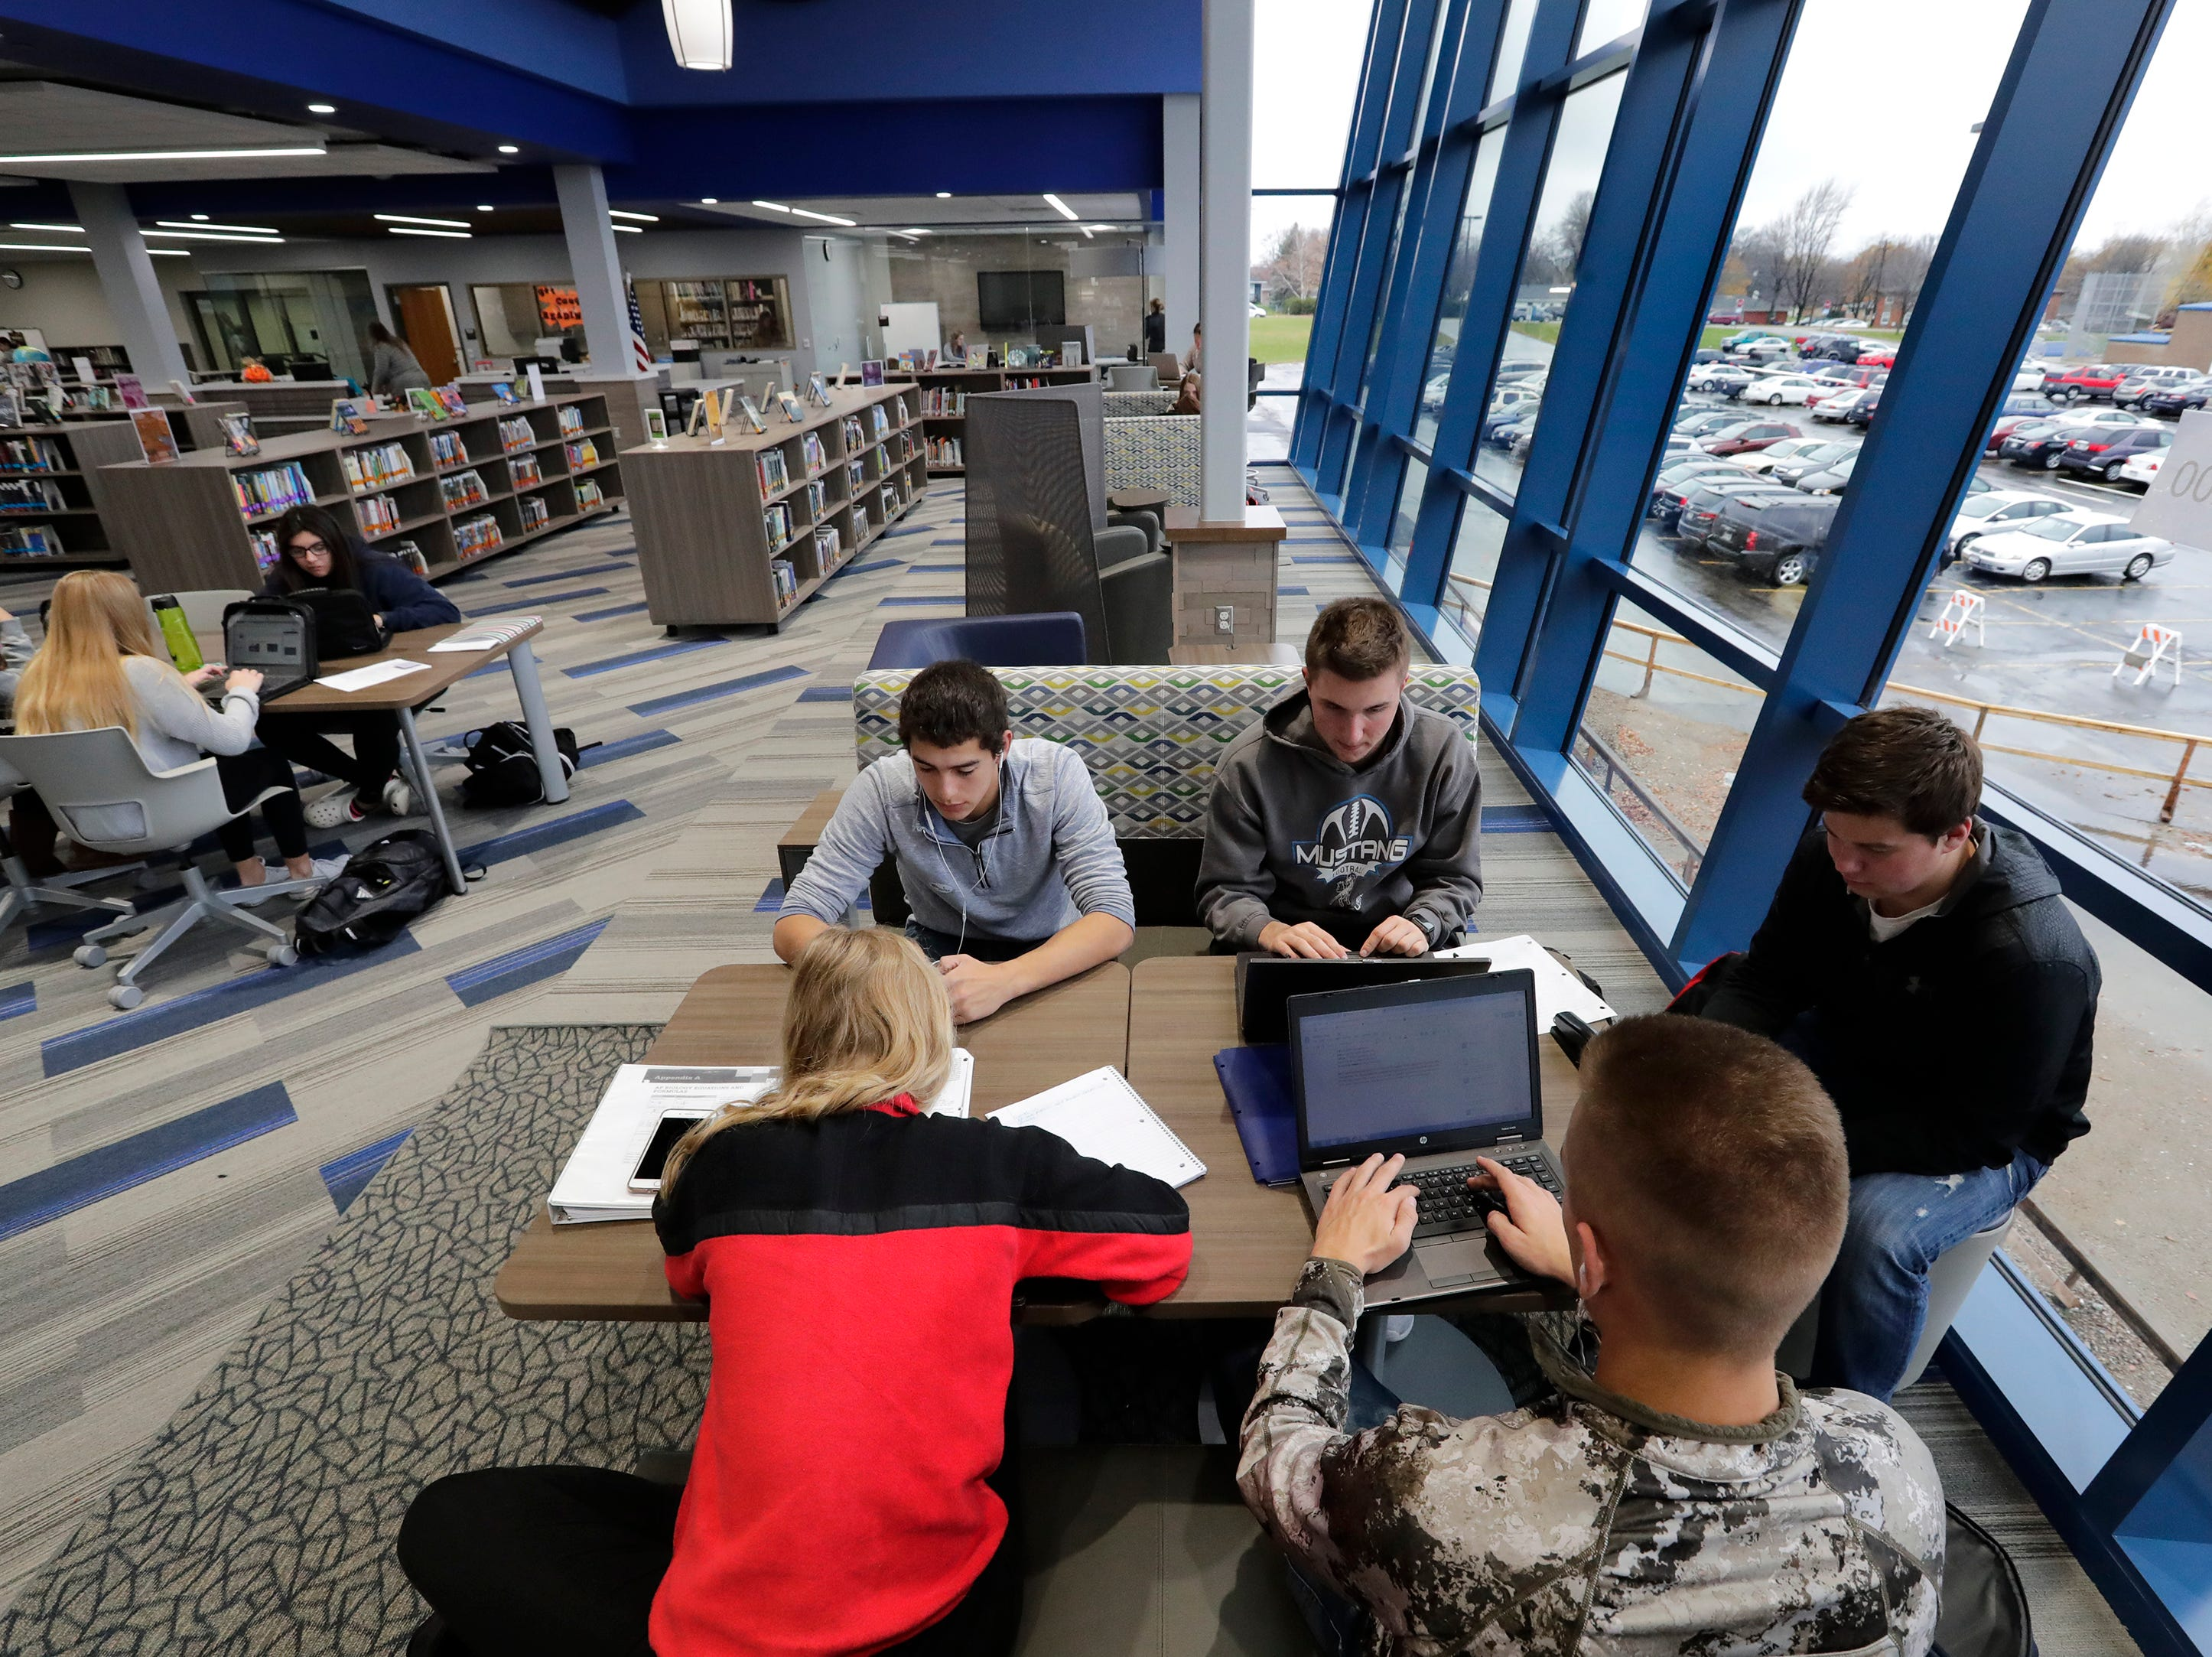 A group of senior students study in the new library at Little Chute High School Tuesday, November 6, 2018, in Little Chute, Wis. 